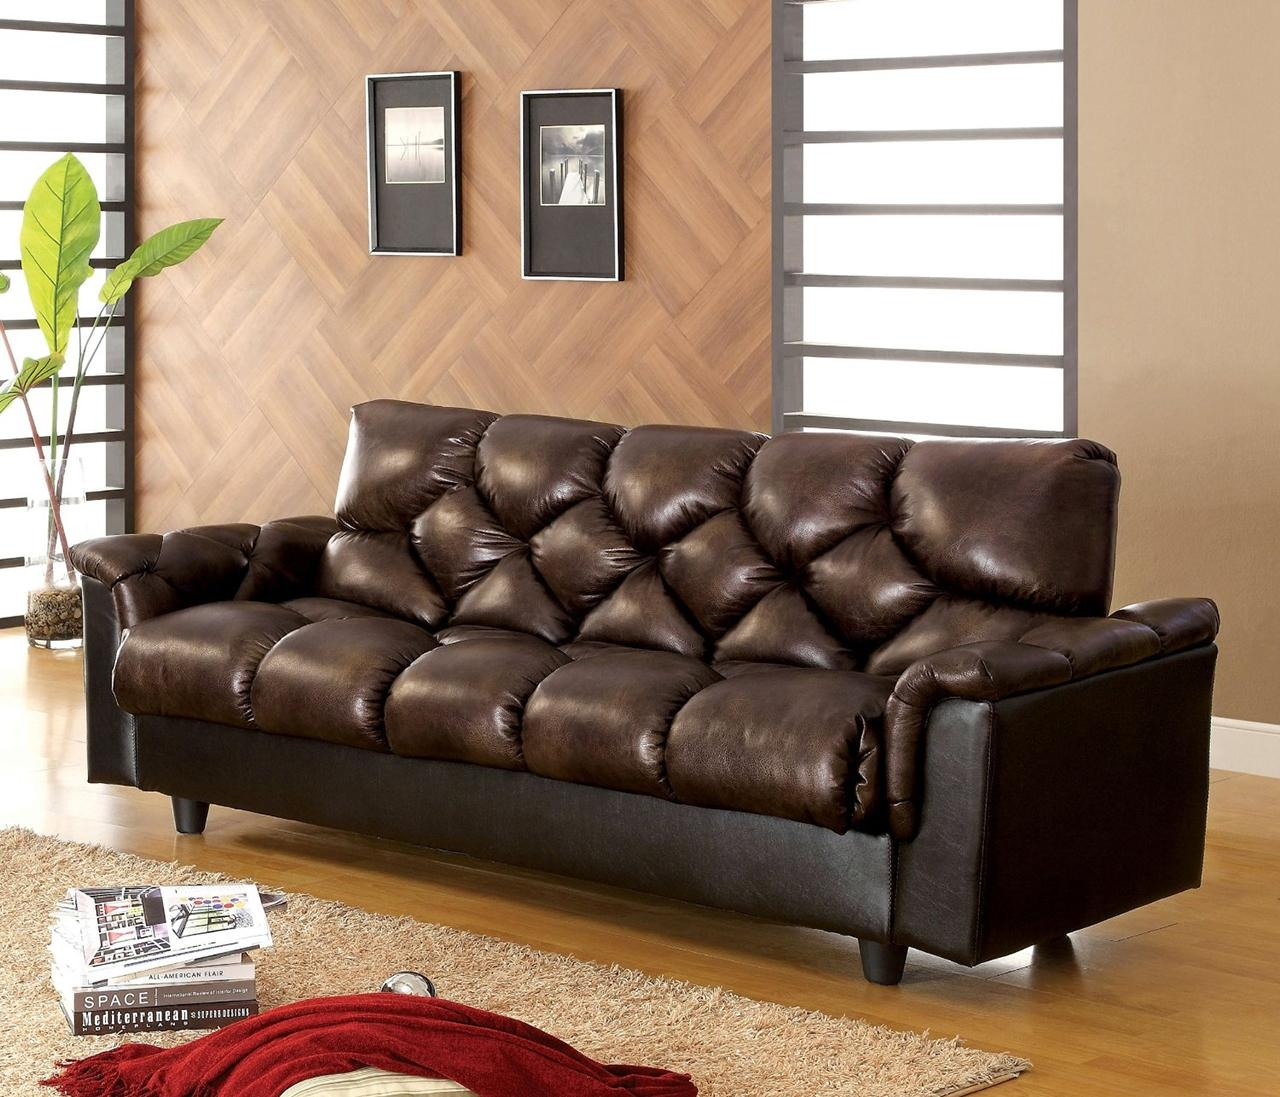 25 Best Sleeper Sofa Beds To Buy In 2017 Regarding Leather Storage Sofas (View 11 of 21)